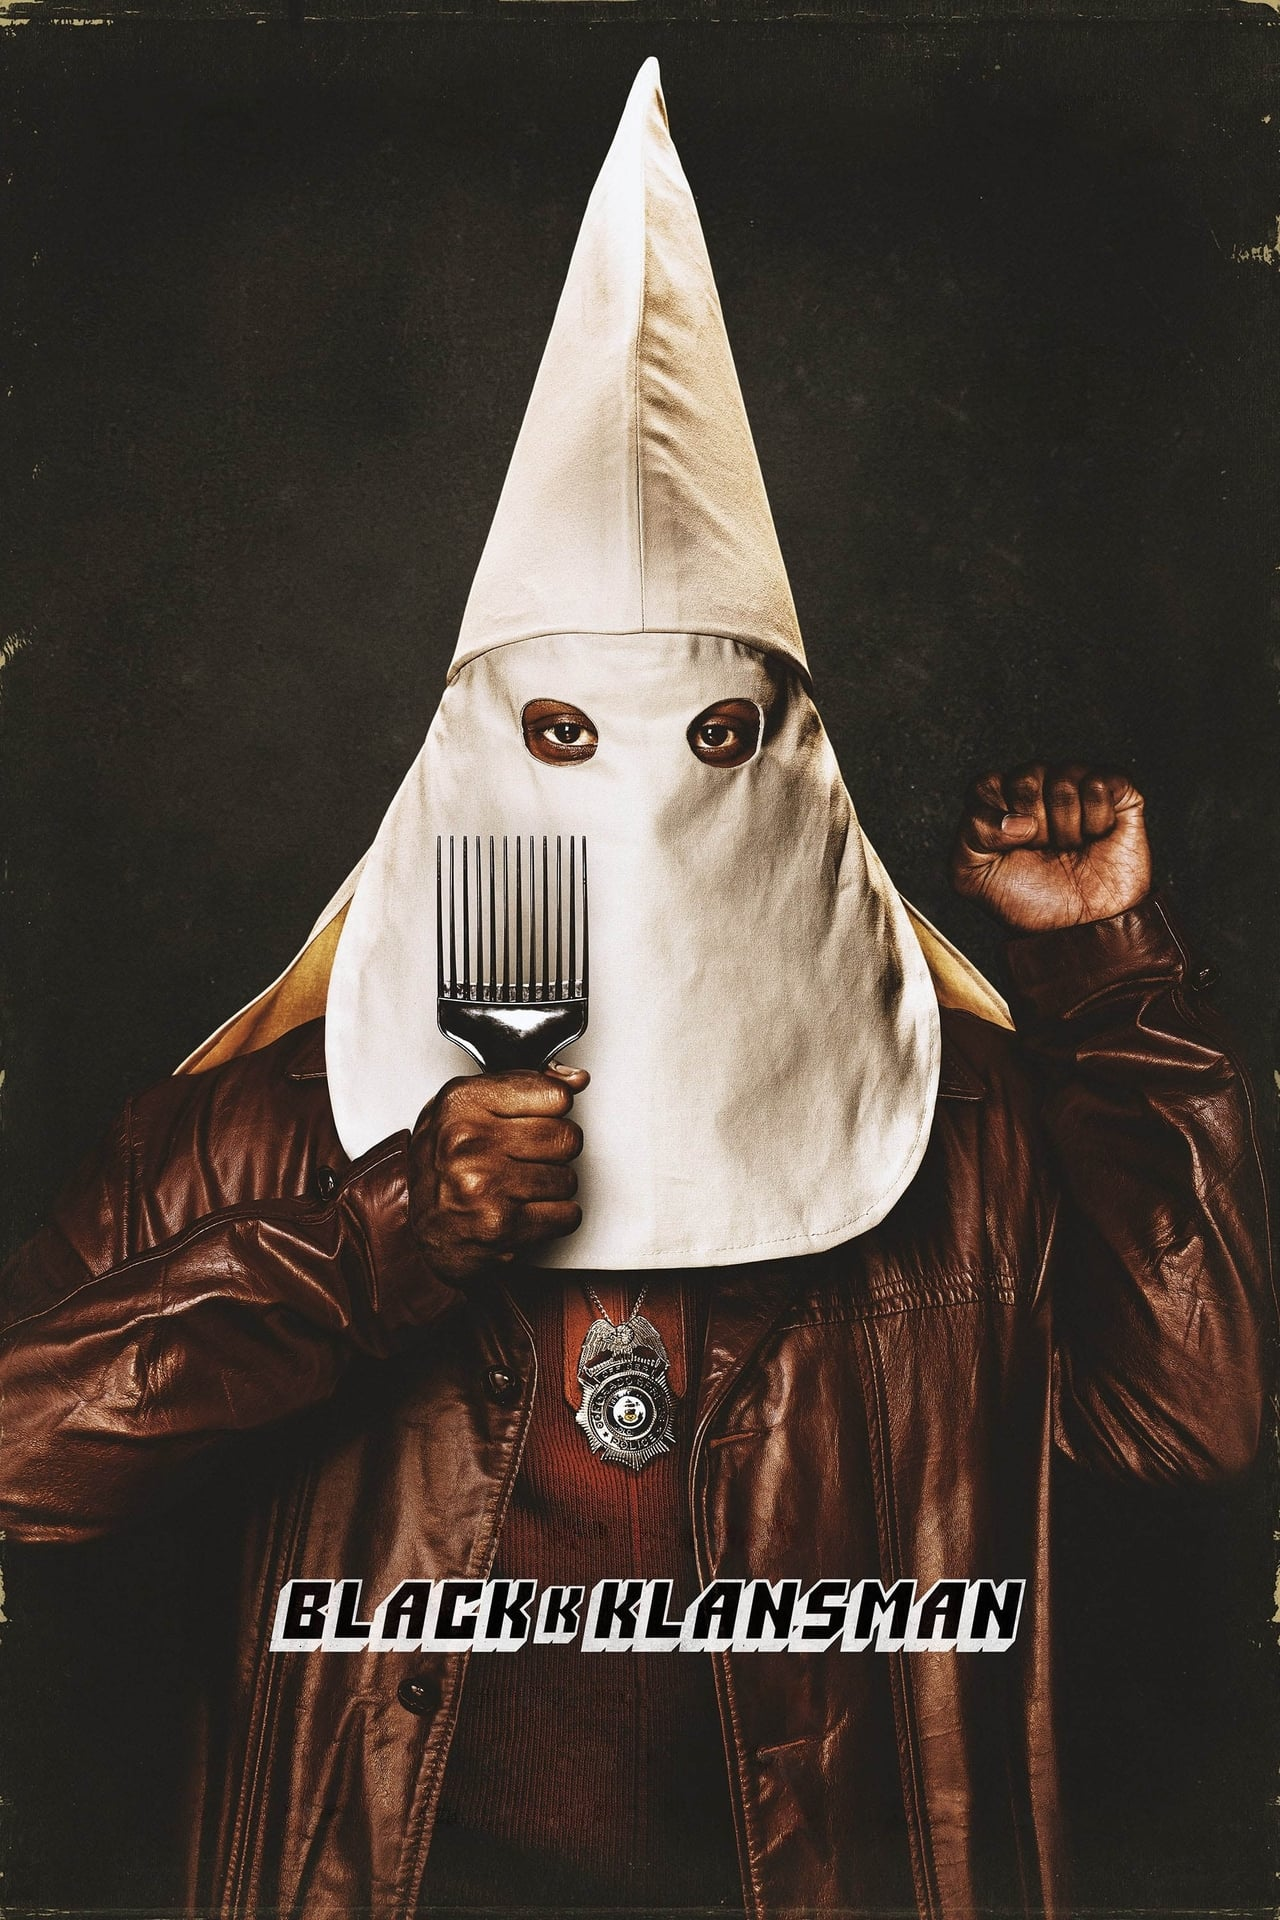 Blackkklansman (2018) putlockers cafe